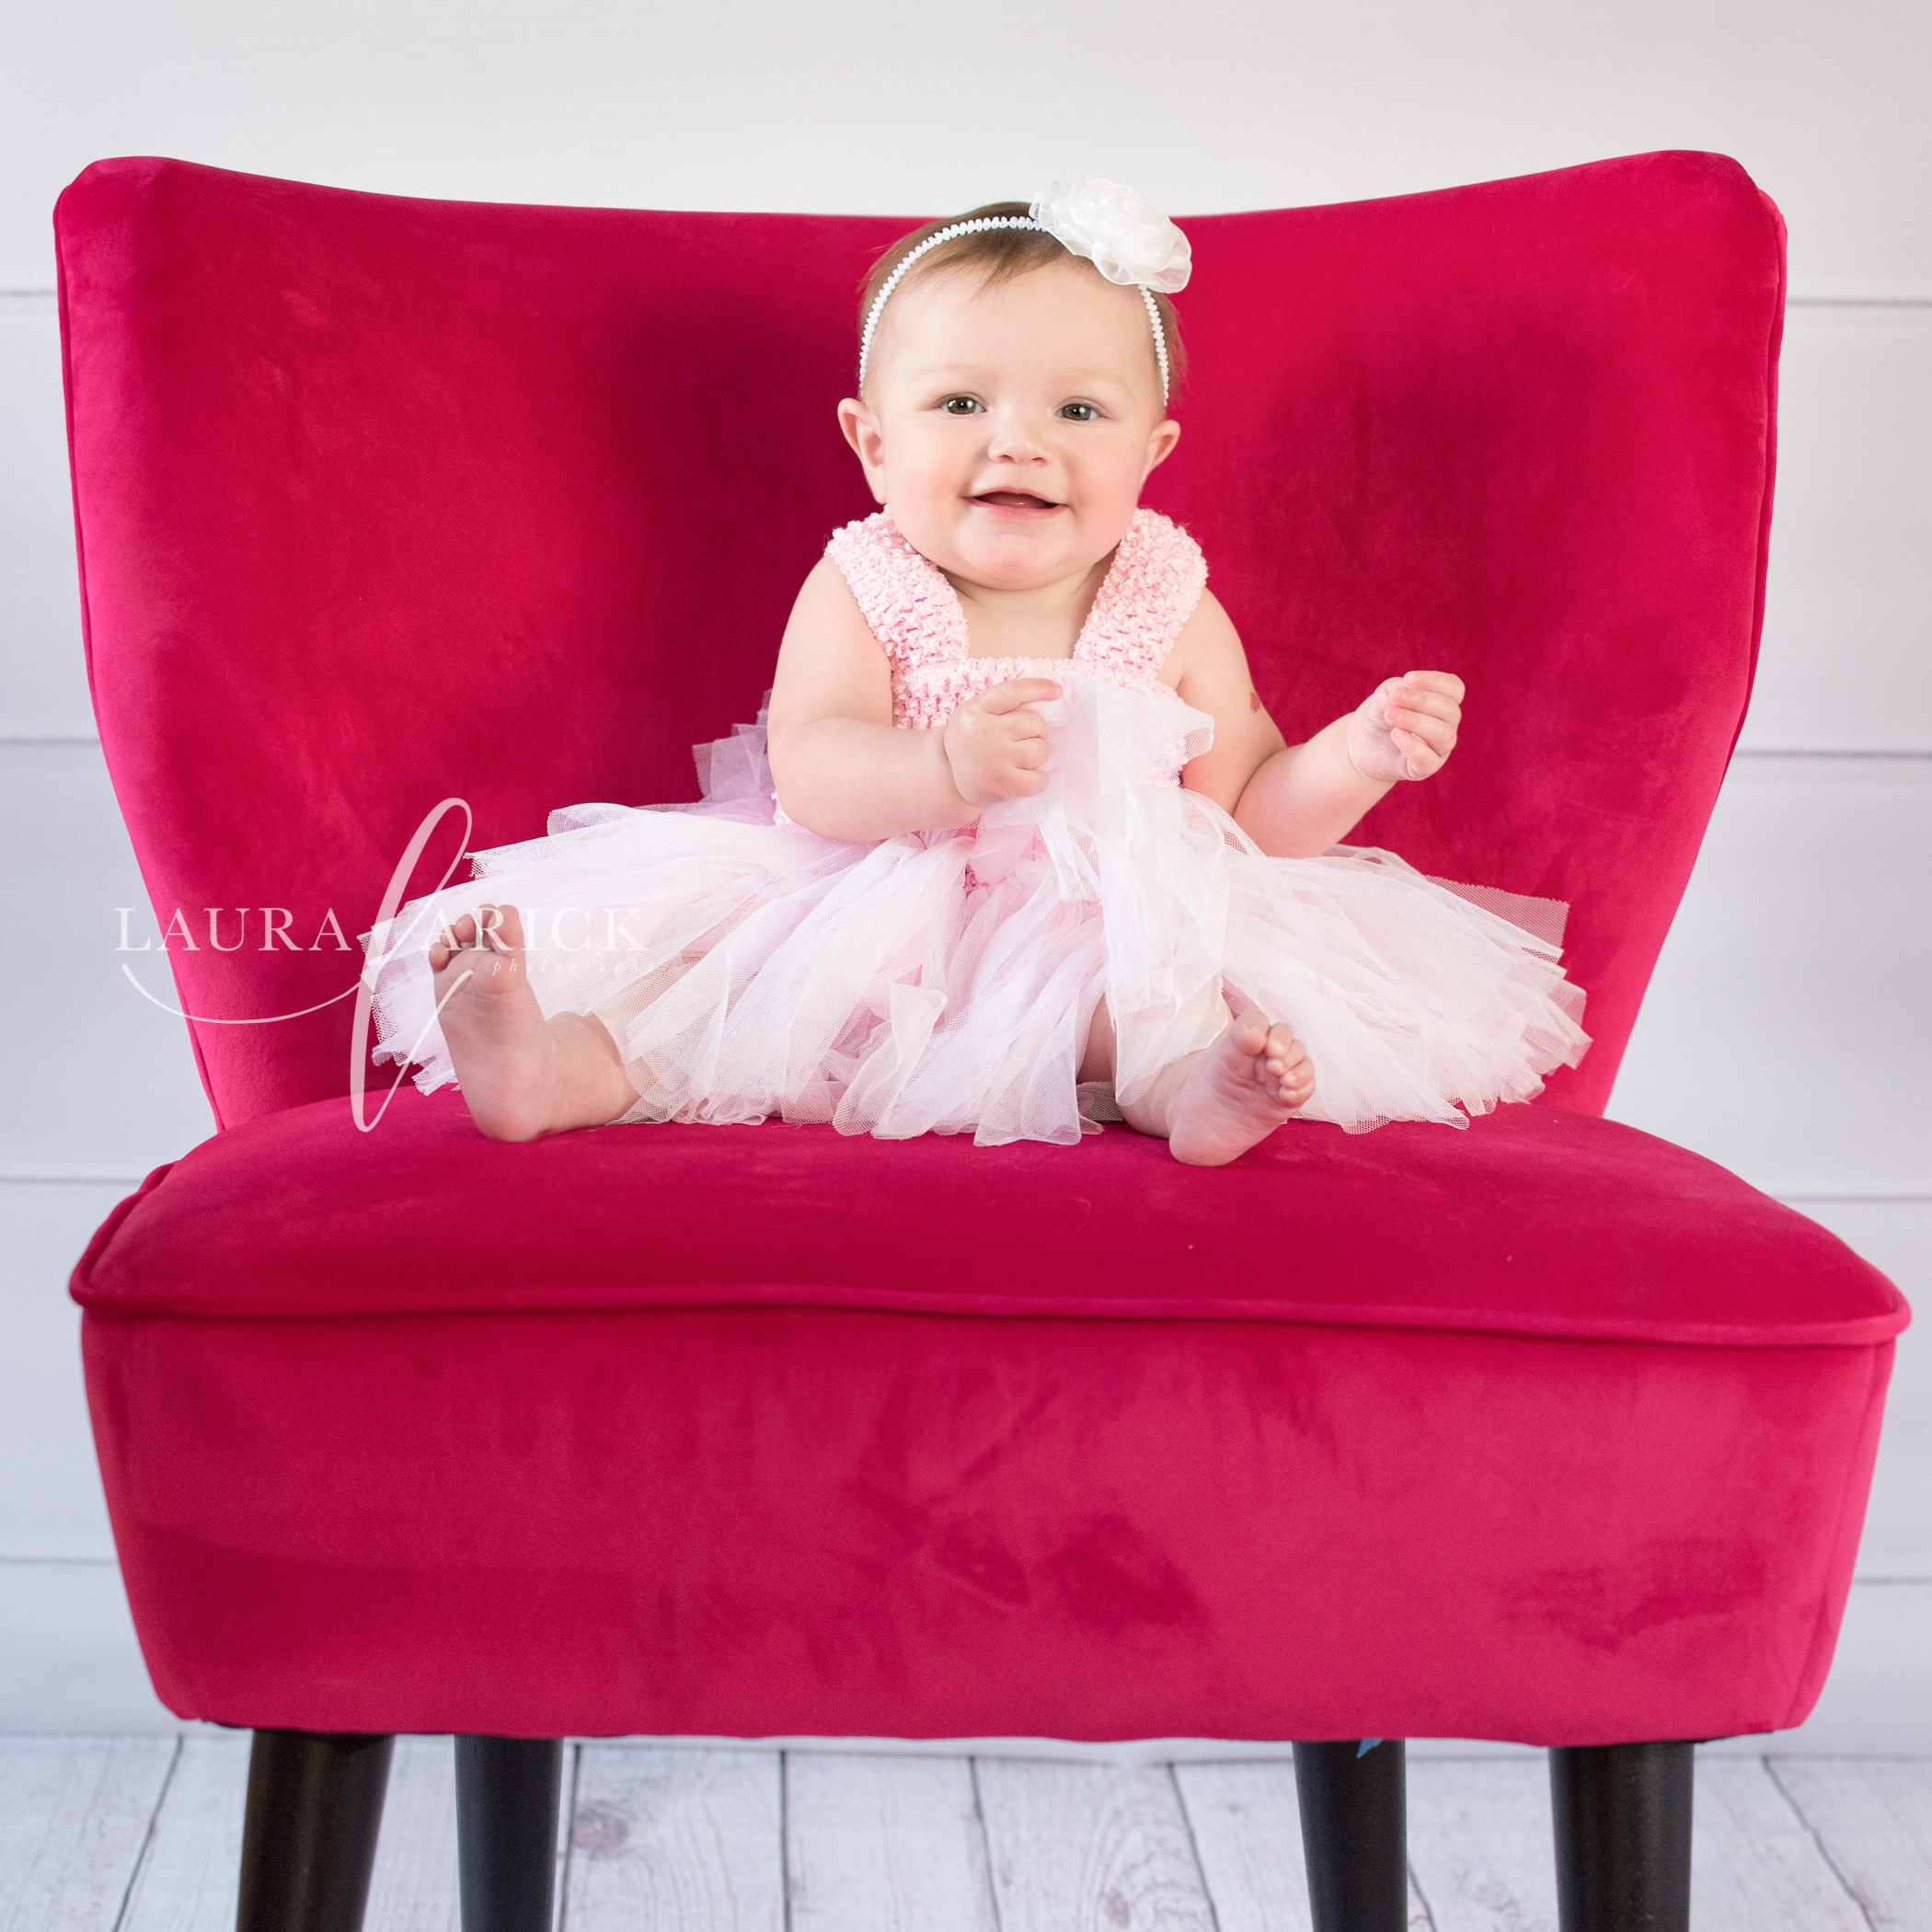 Newborn Pictures   Carmel Indiana   Baby E